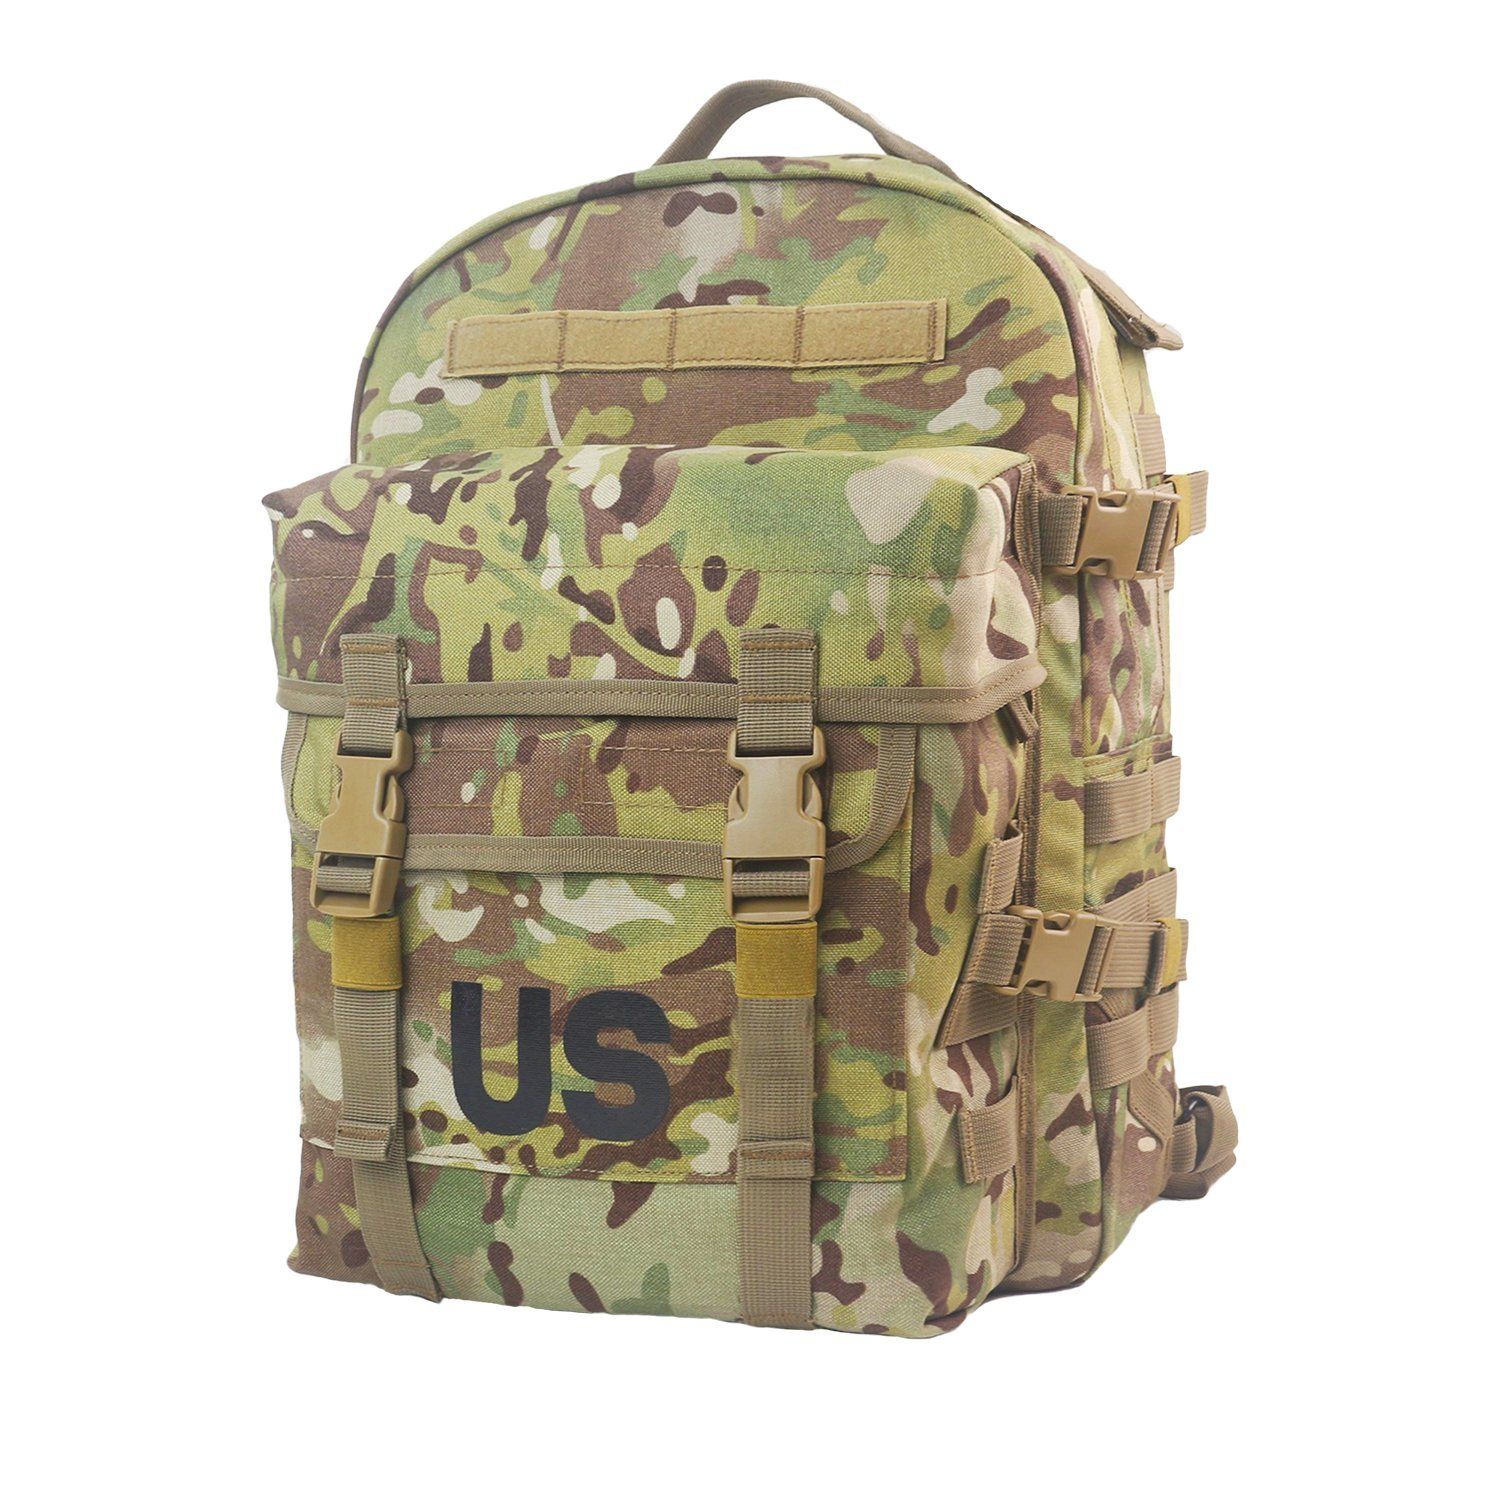 dca3aa6603 Get Quotations · US Molle II Military Multicam Cordura 3 Day Assault Pack  Tactical Backpack for Hunting Hiking